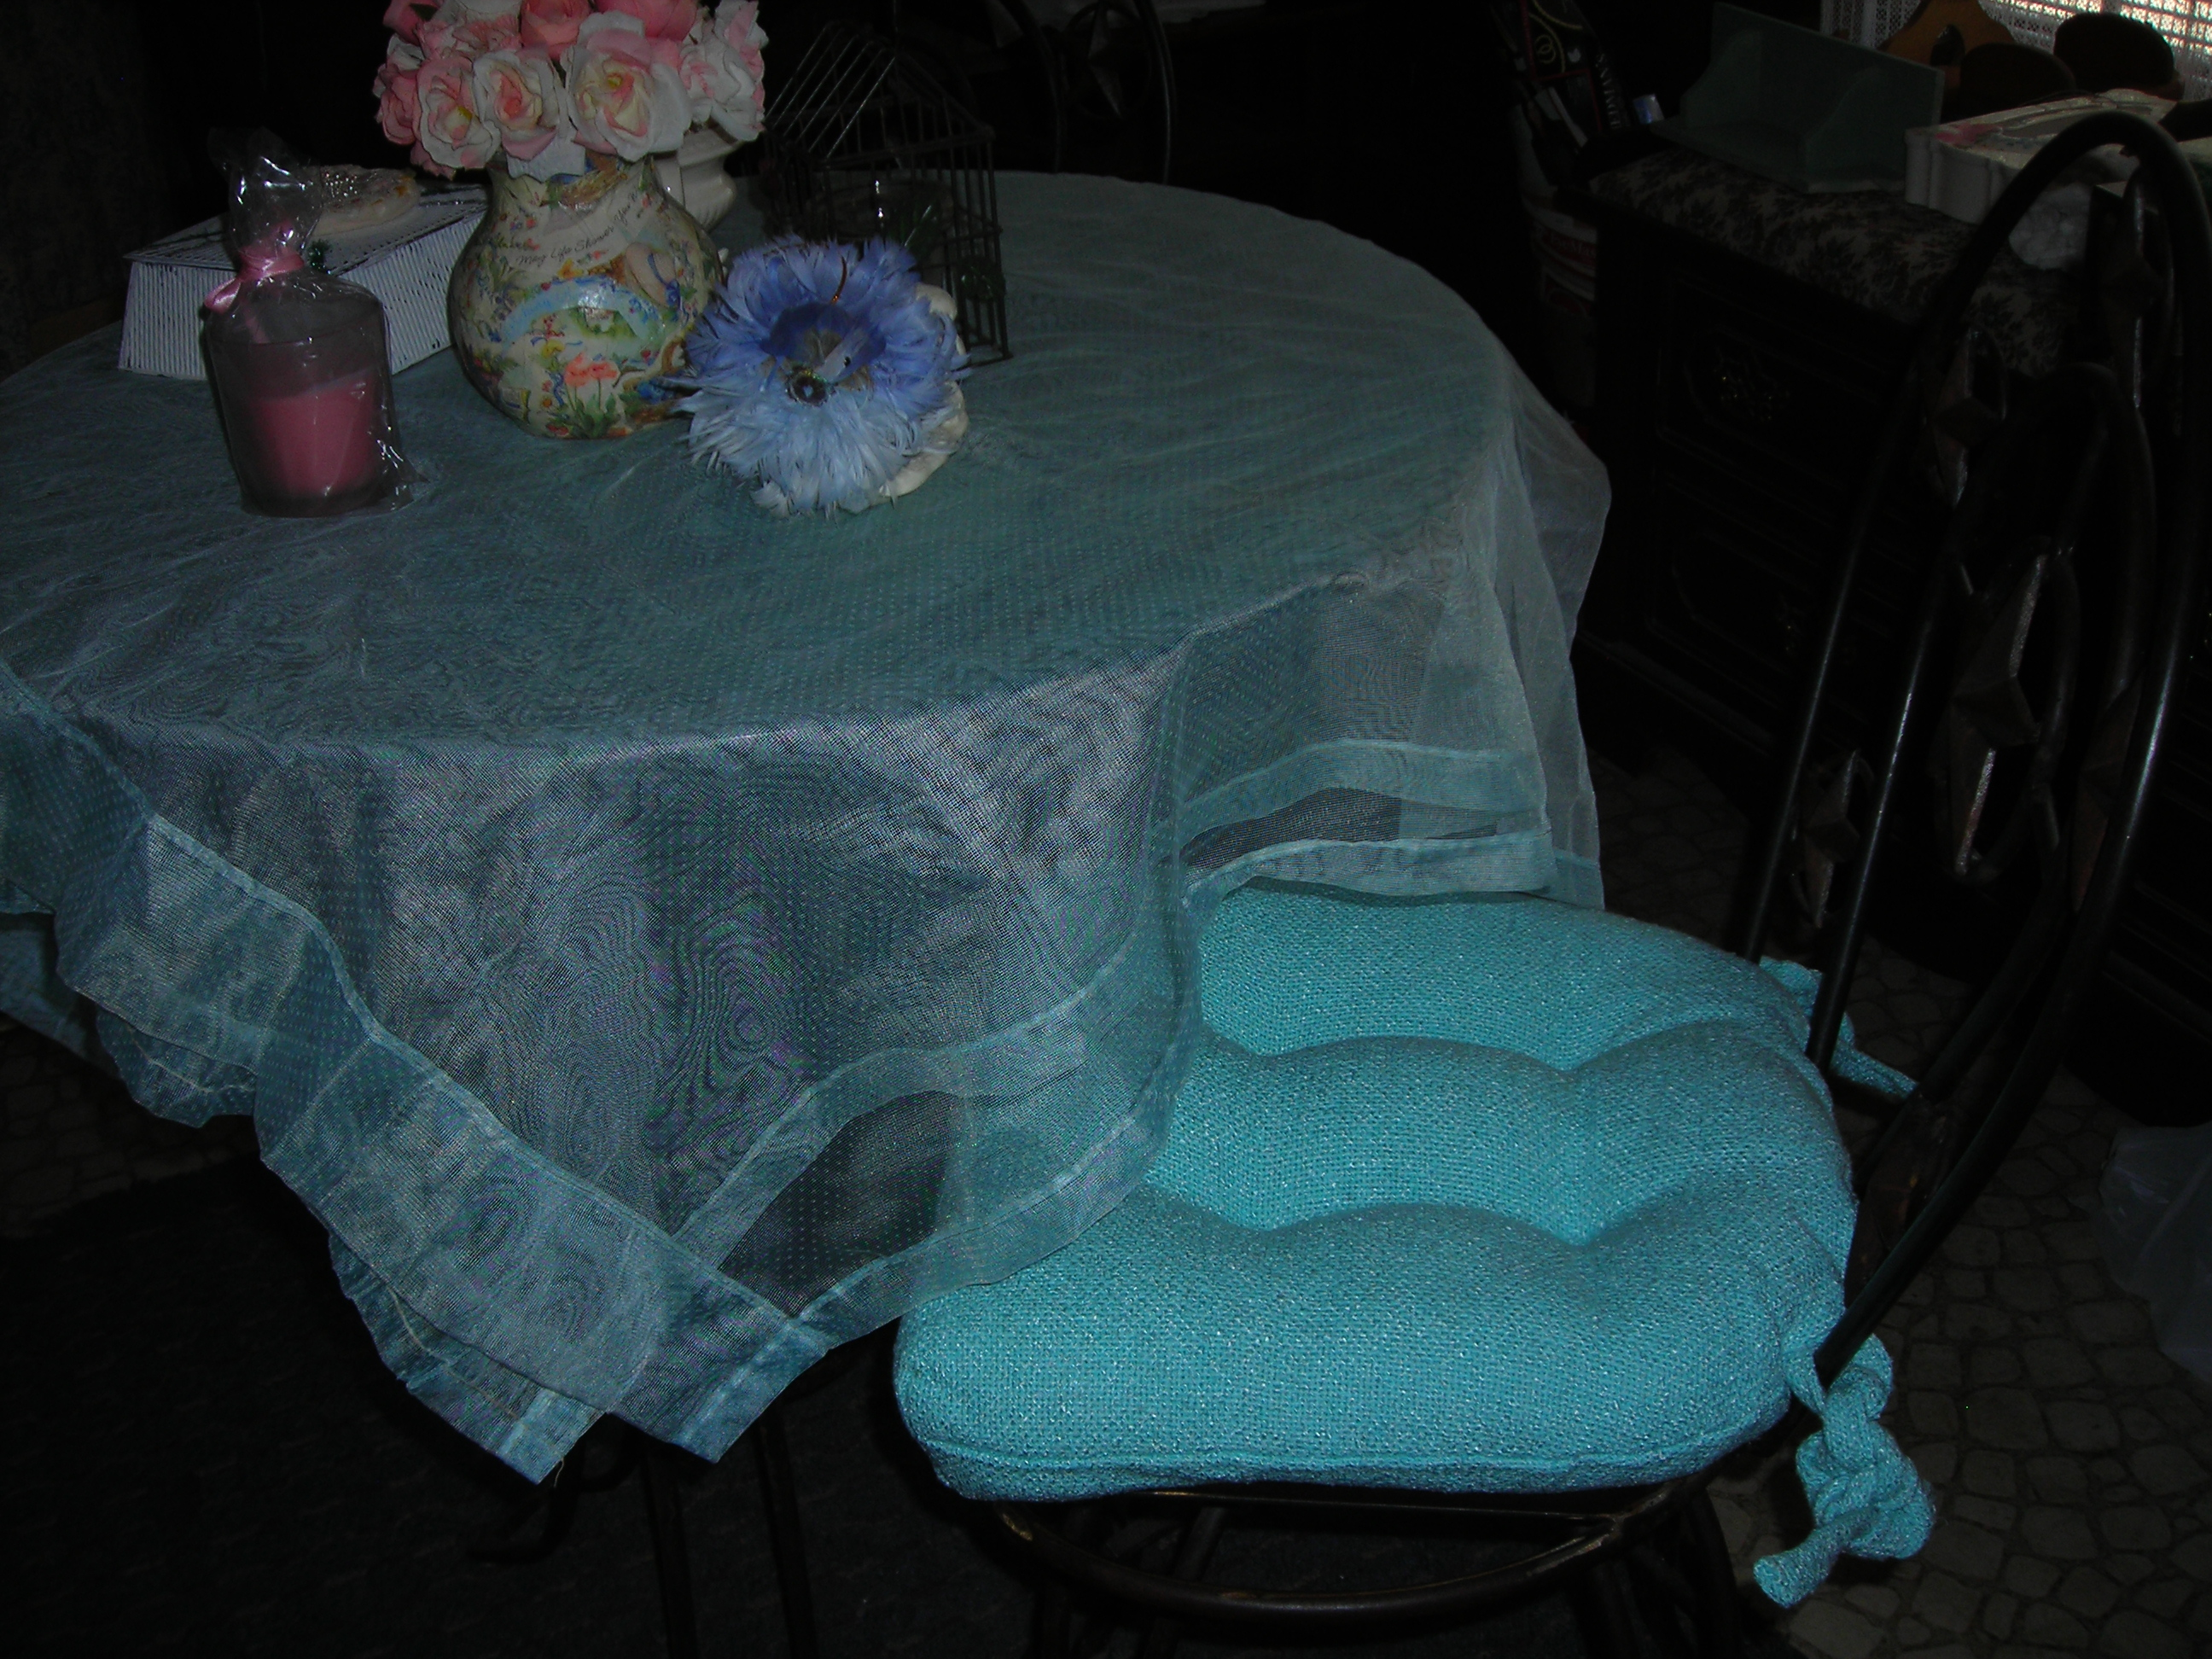 My new chair cushions for the breakfast nook ... I absolutely LOVE that color, right after PINK! Great retro color, huh?